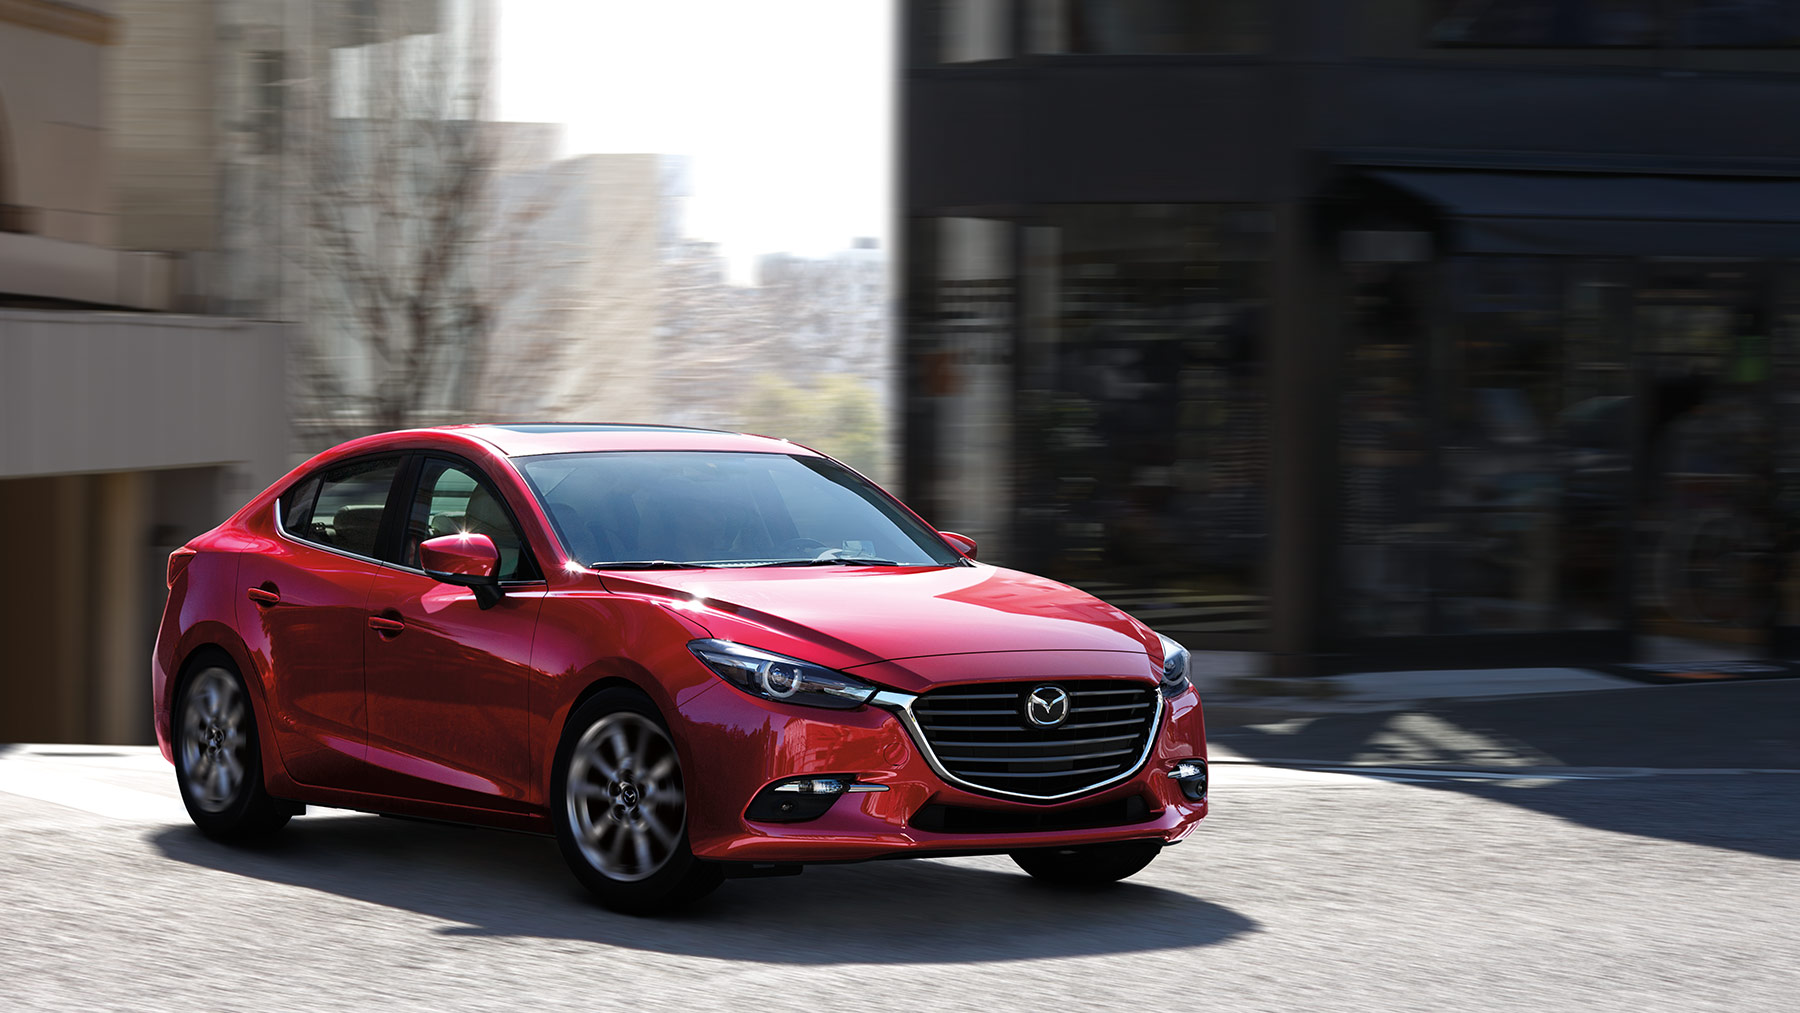 2018 Mazda3 for Sale near Houston, TX